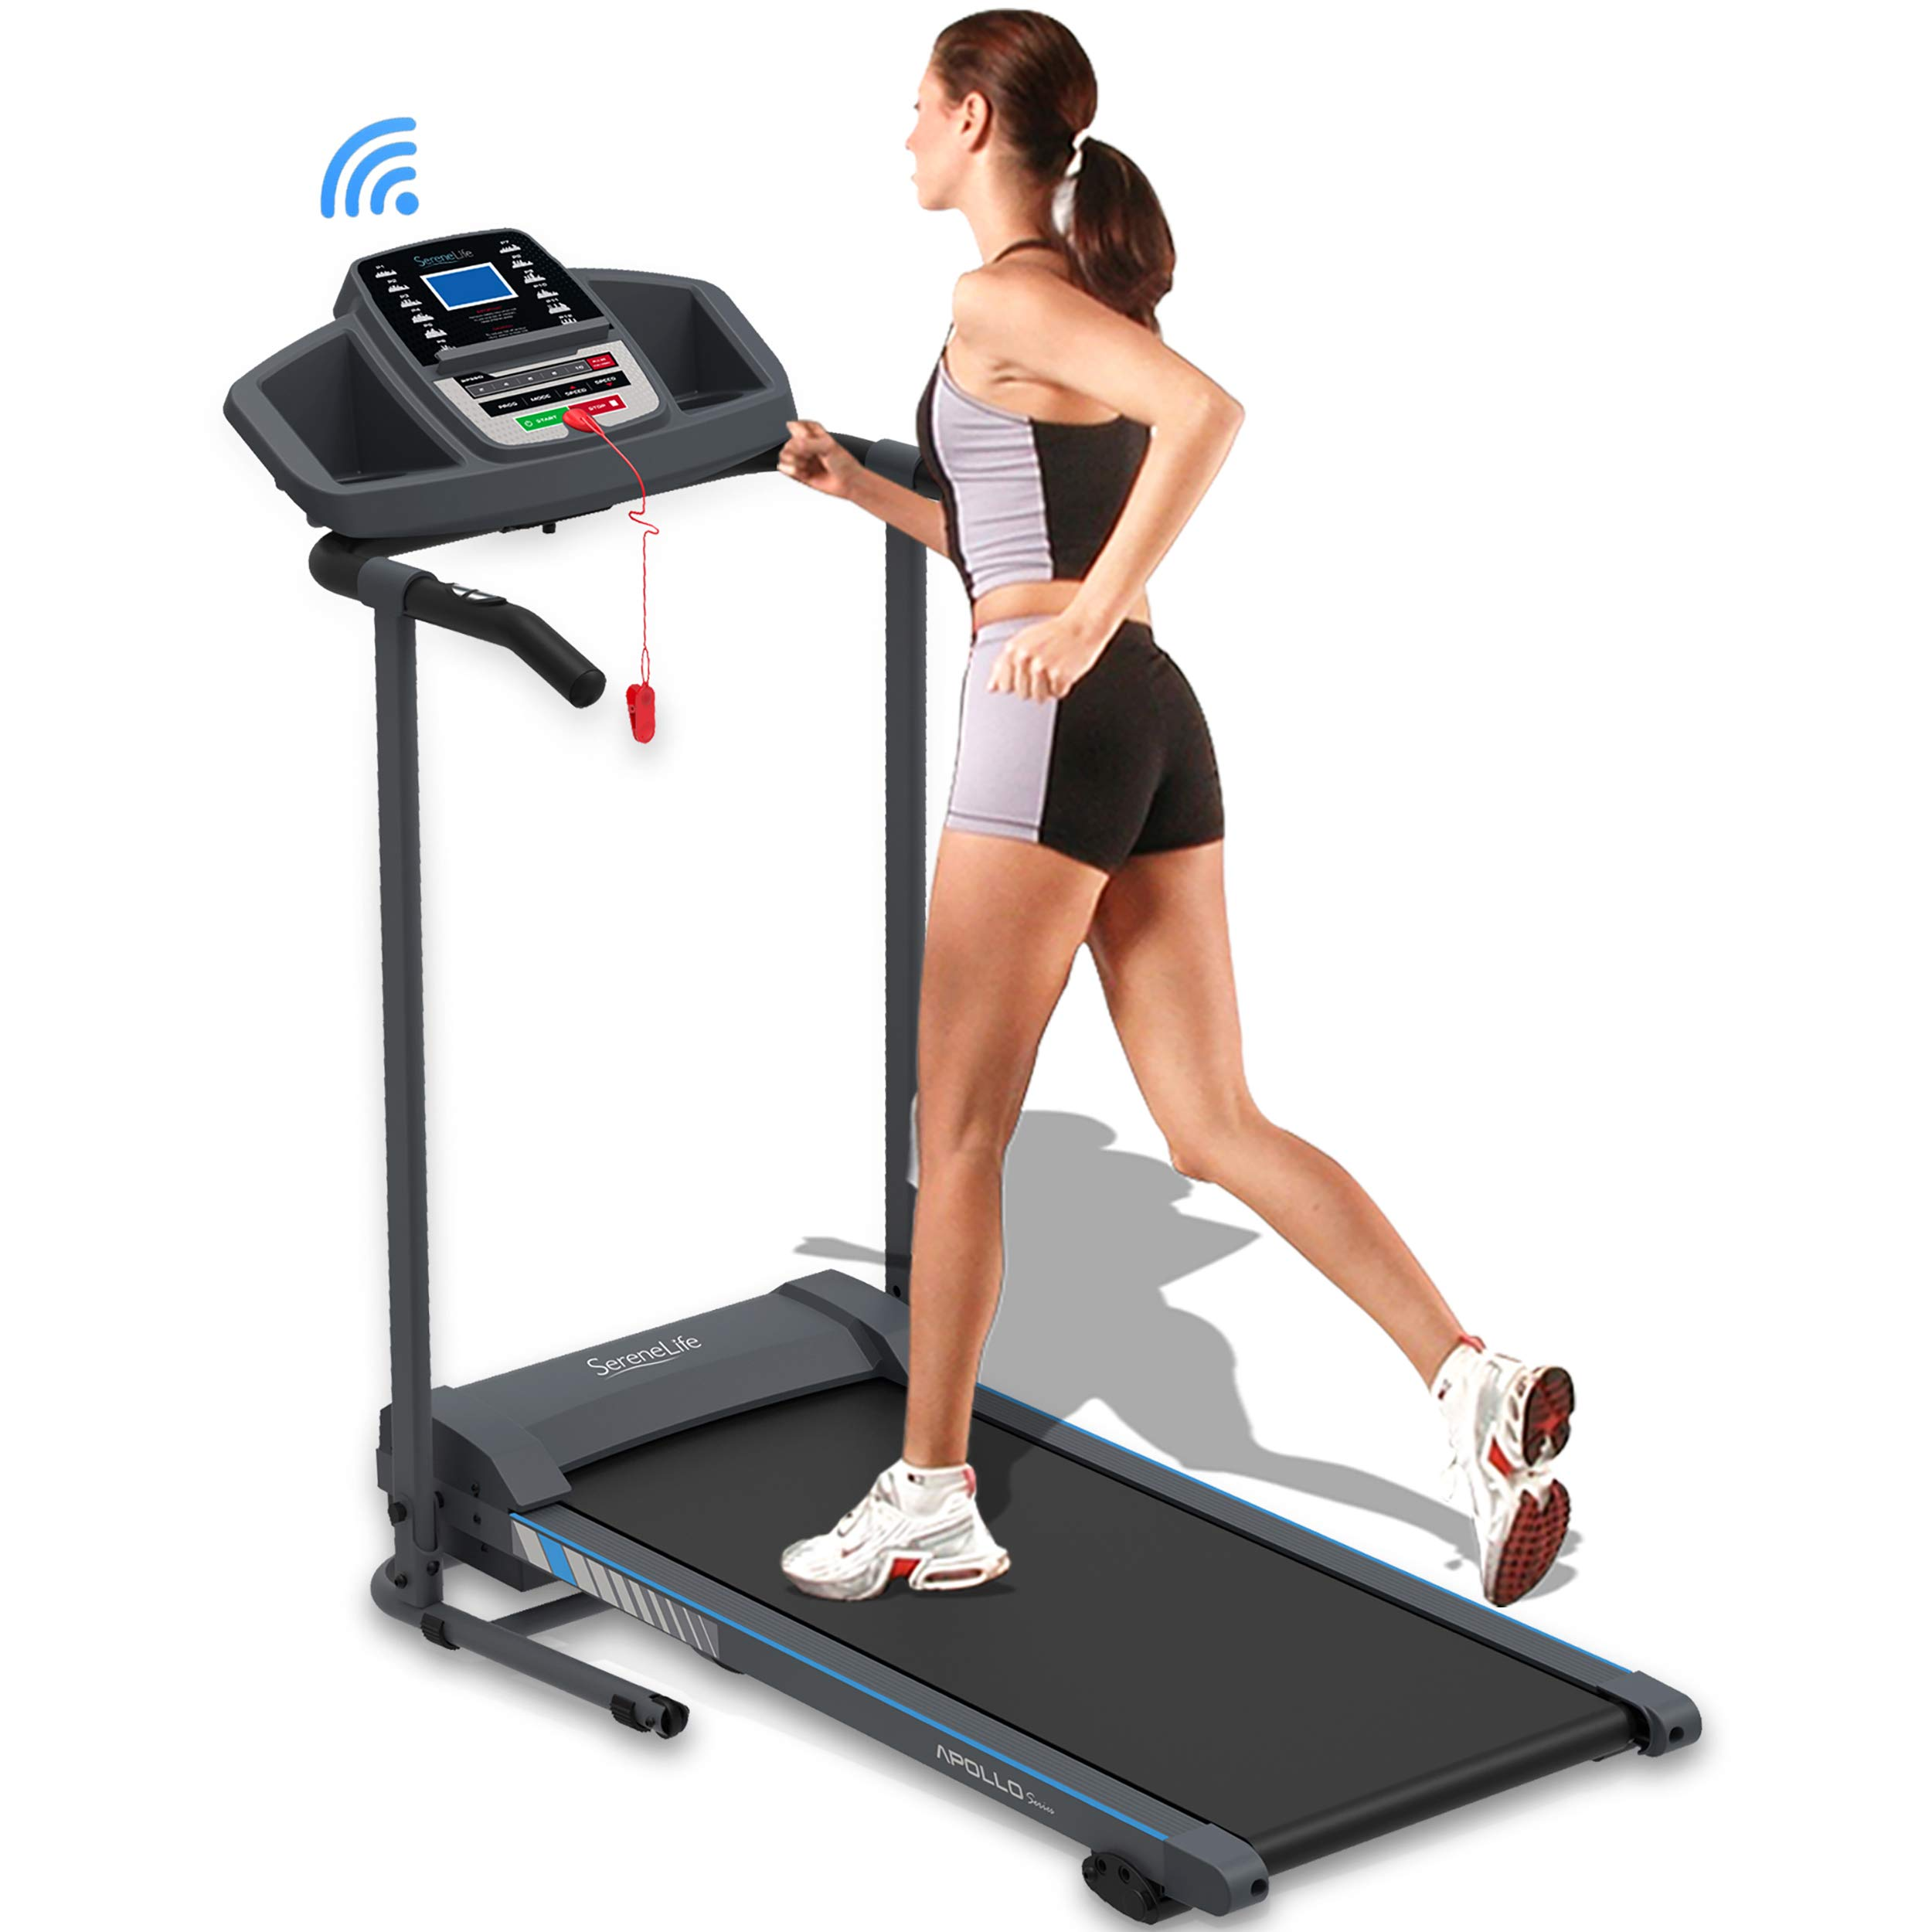 SereneLife Smart Electric Folding Treadmill – Easy Assembly Fitness Motorized Running Jogging Exercise Machine with…